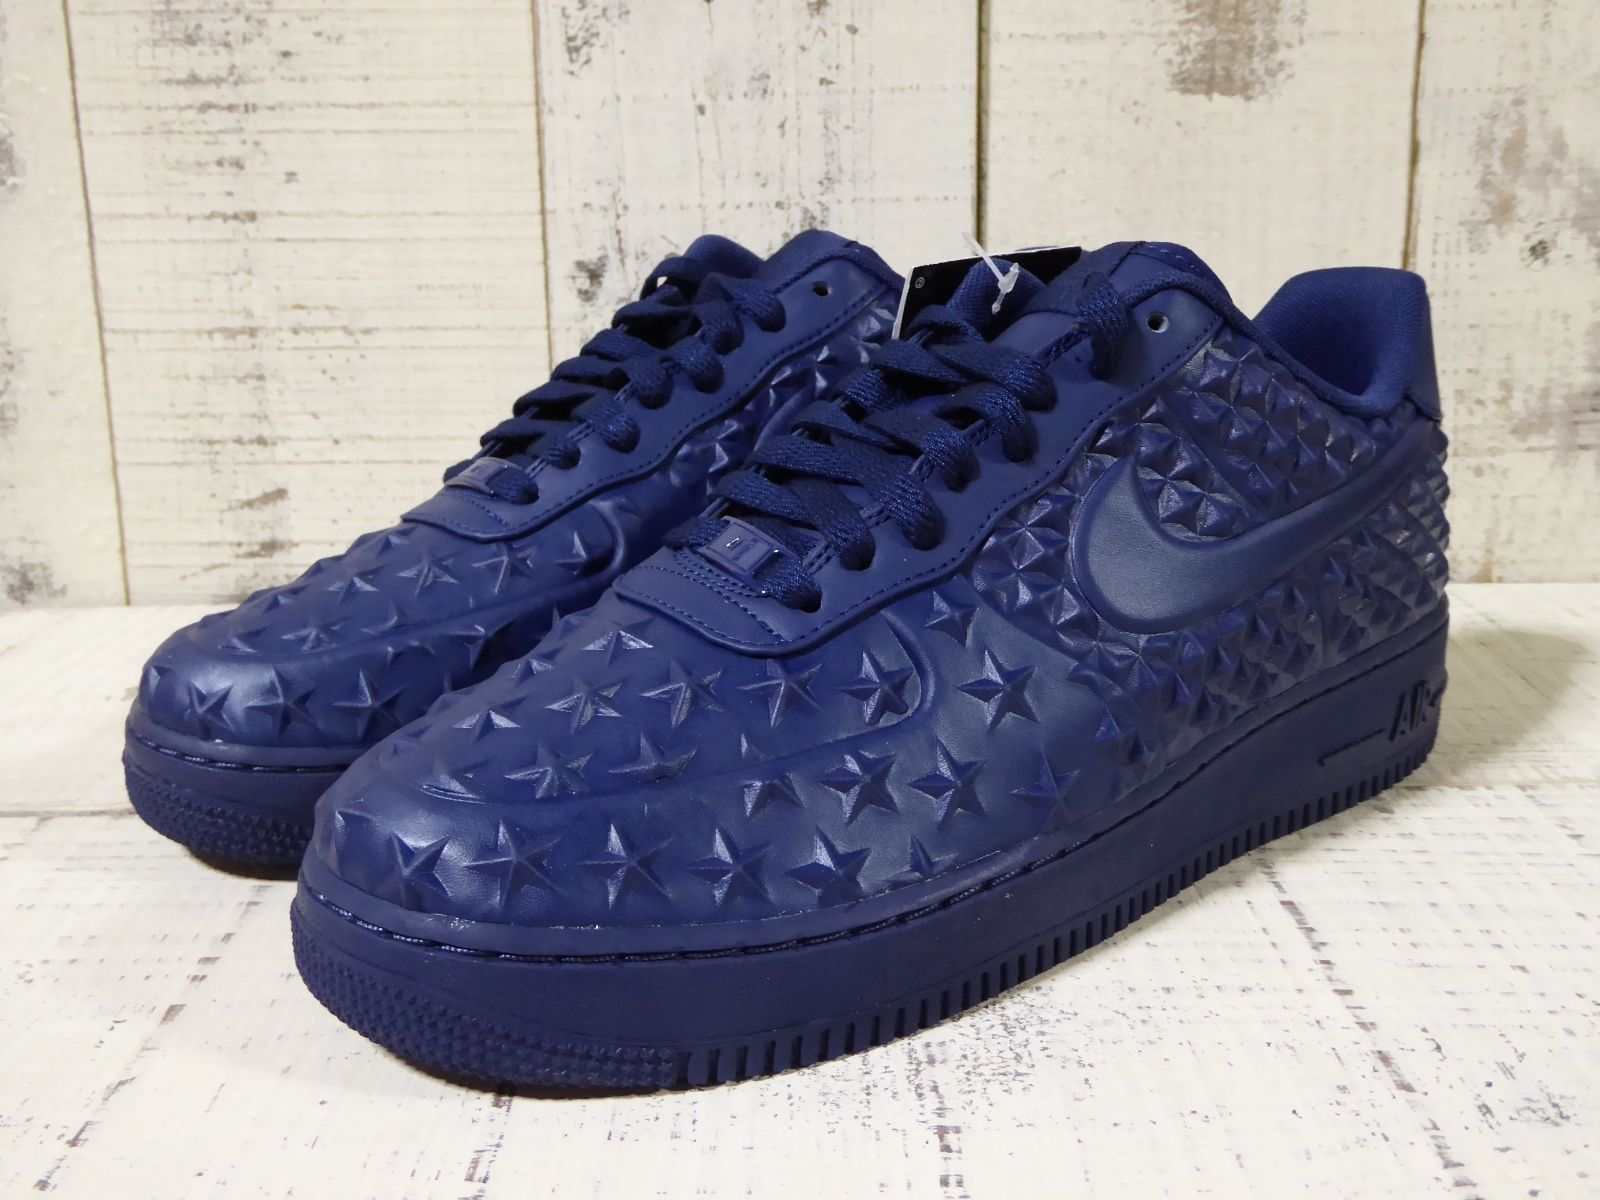 Men's Nike Air Force 1 Low LV8 VT Star Independence Day Midnight Navy Sneakers : M86g2049